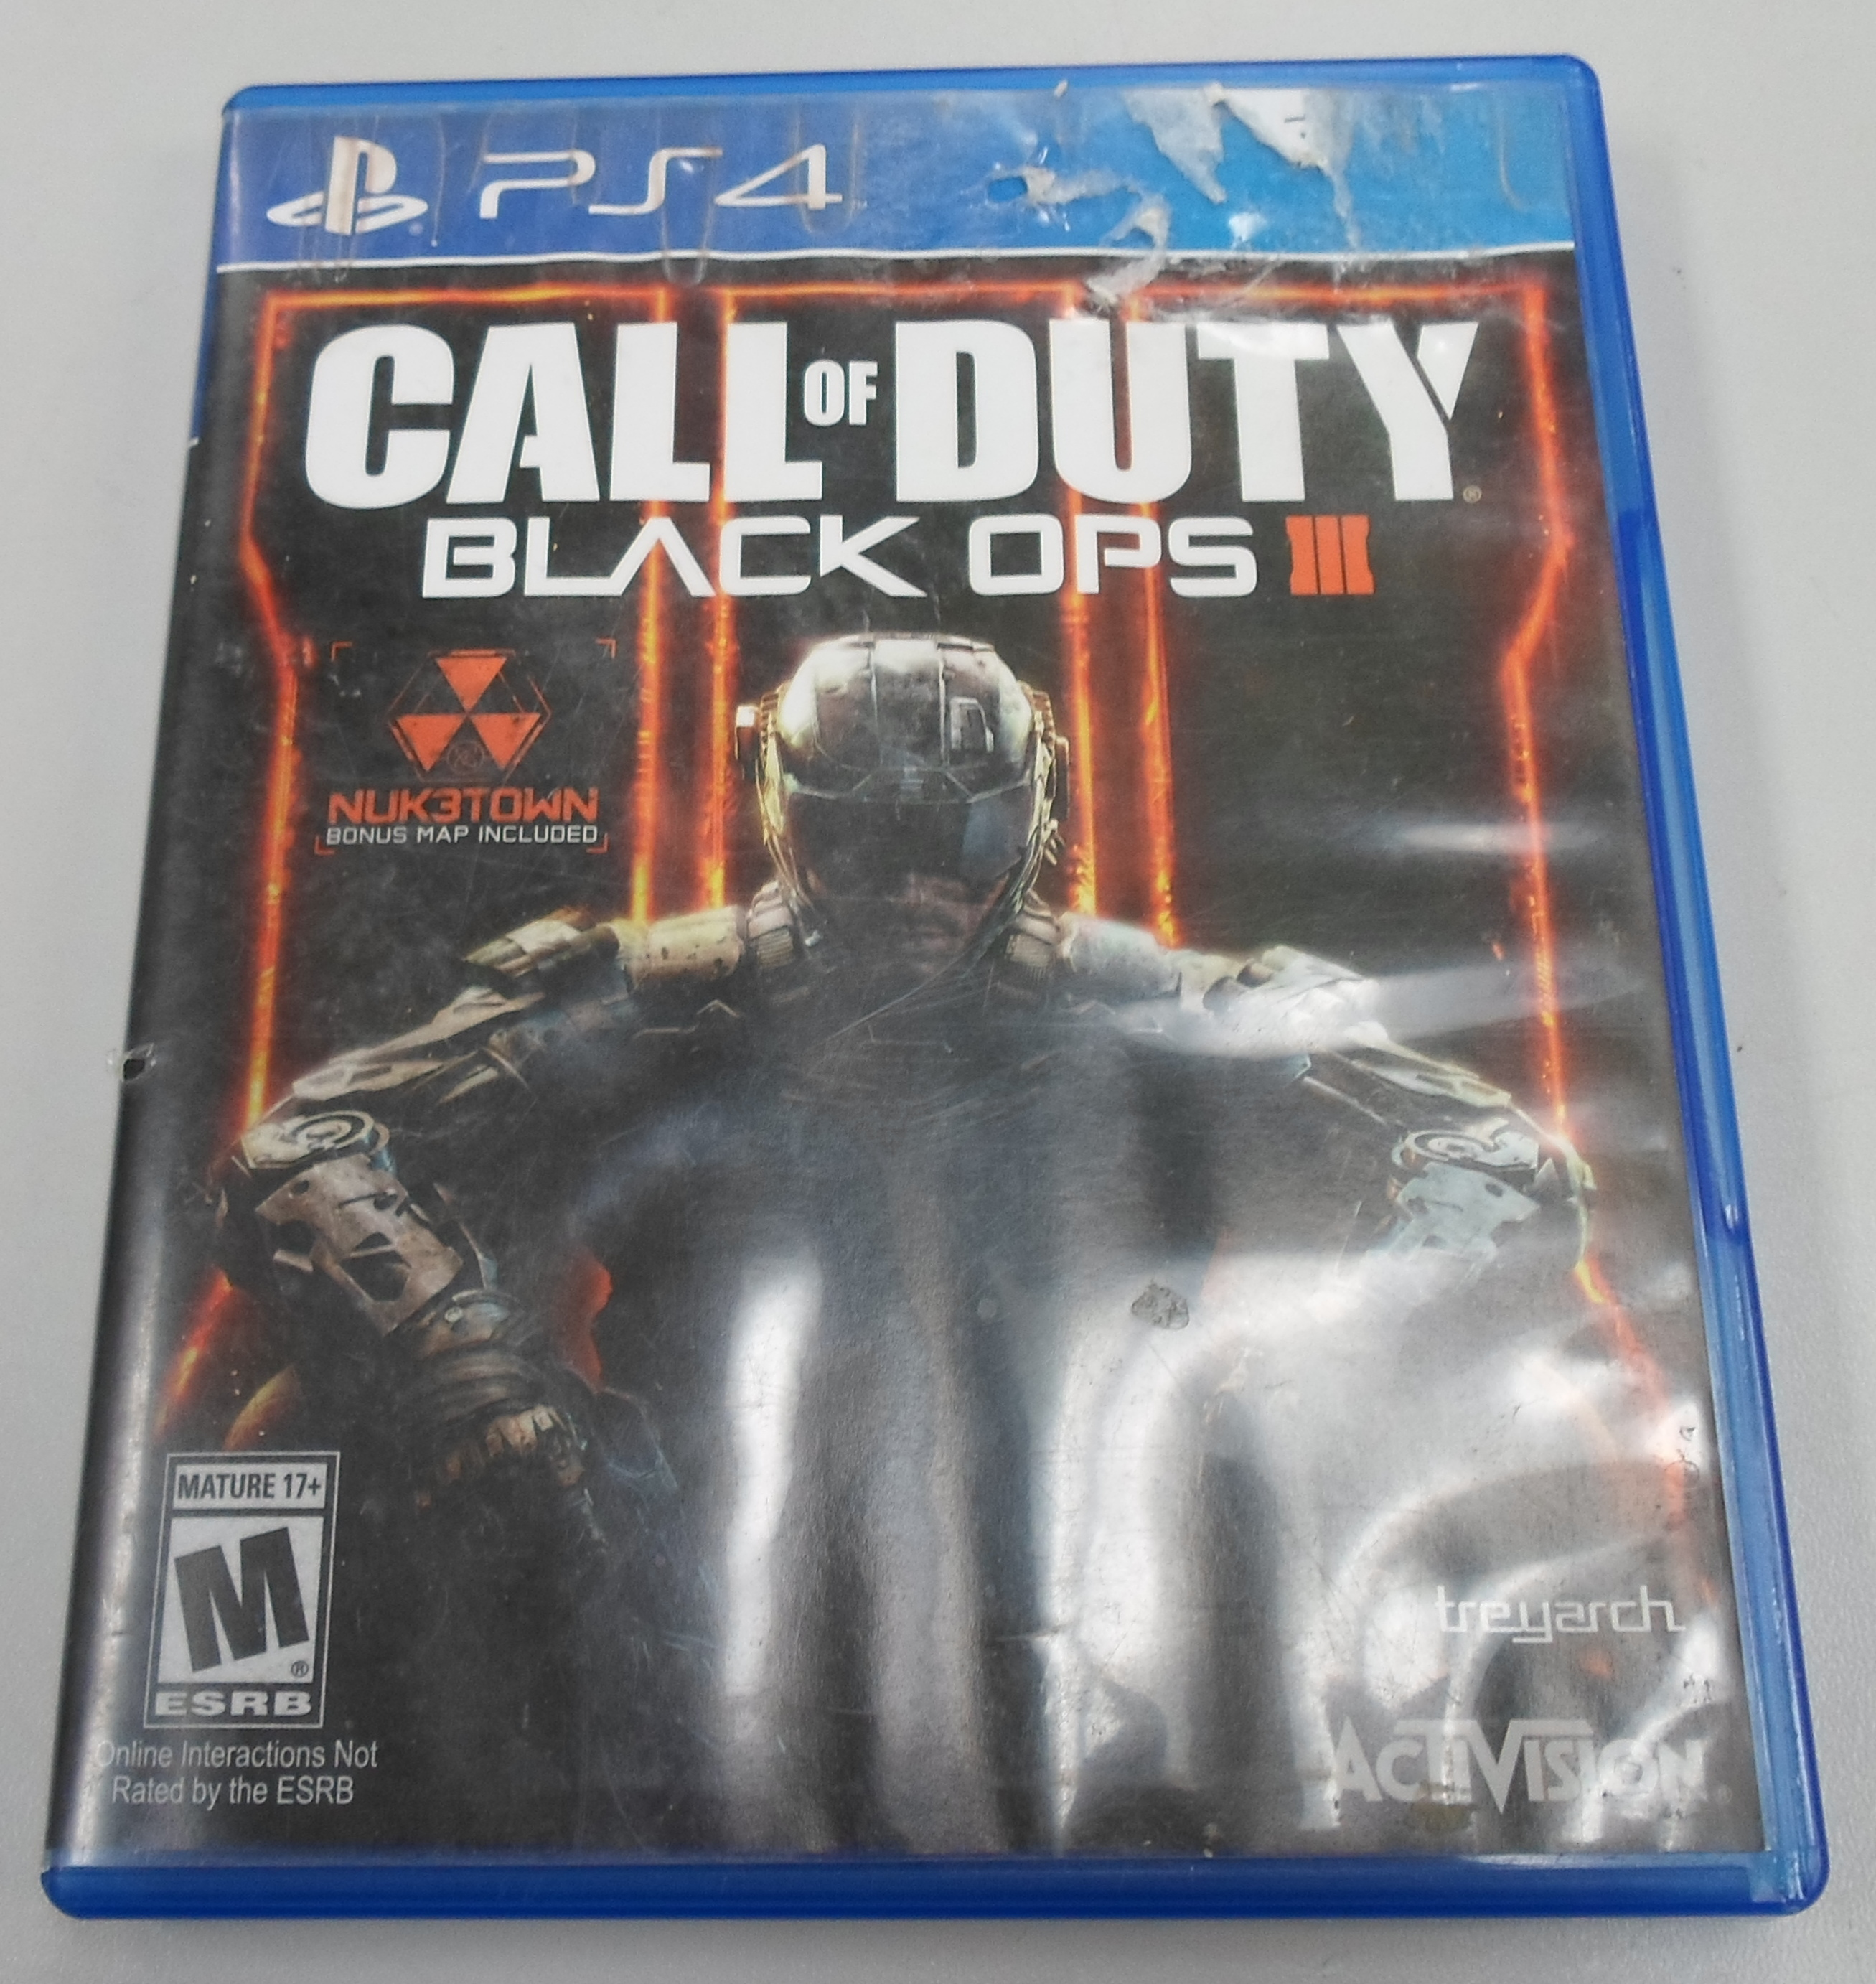 CALL OF DUTY BLACK OPS 3 - PS 4 GAME